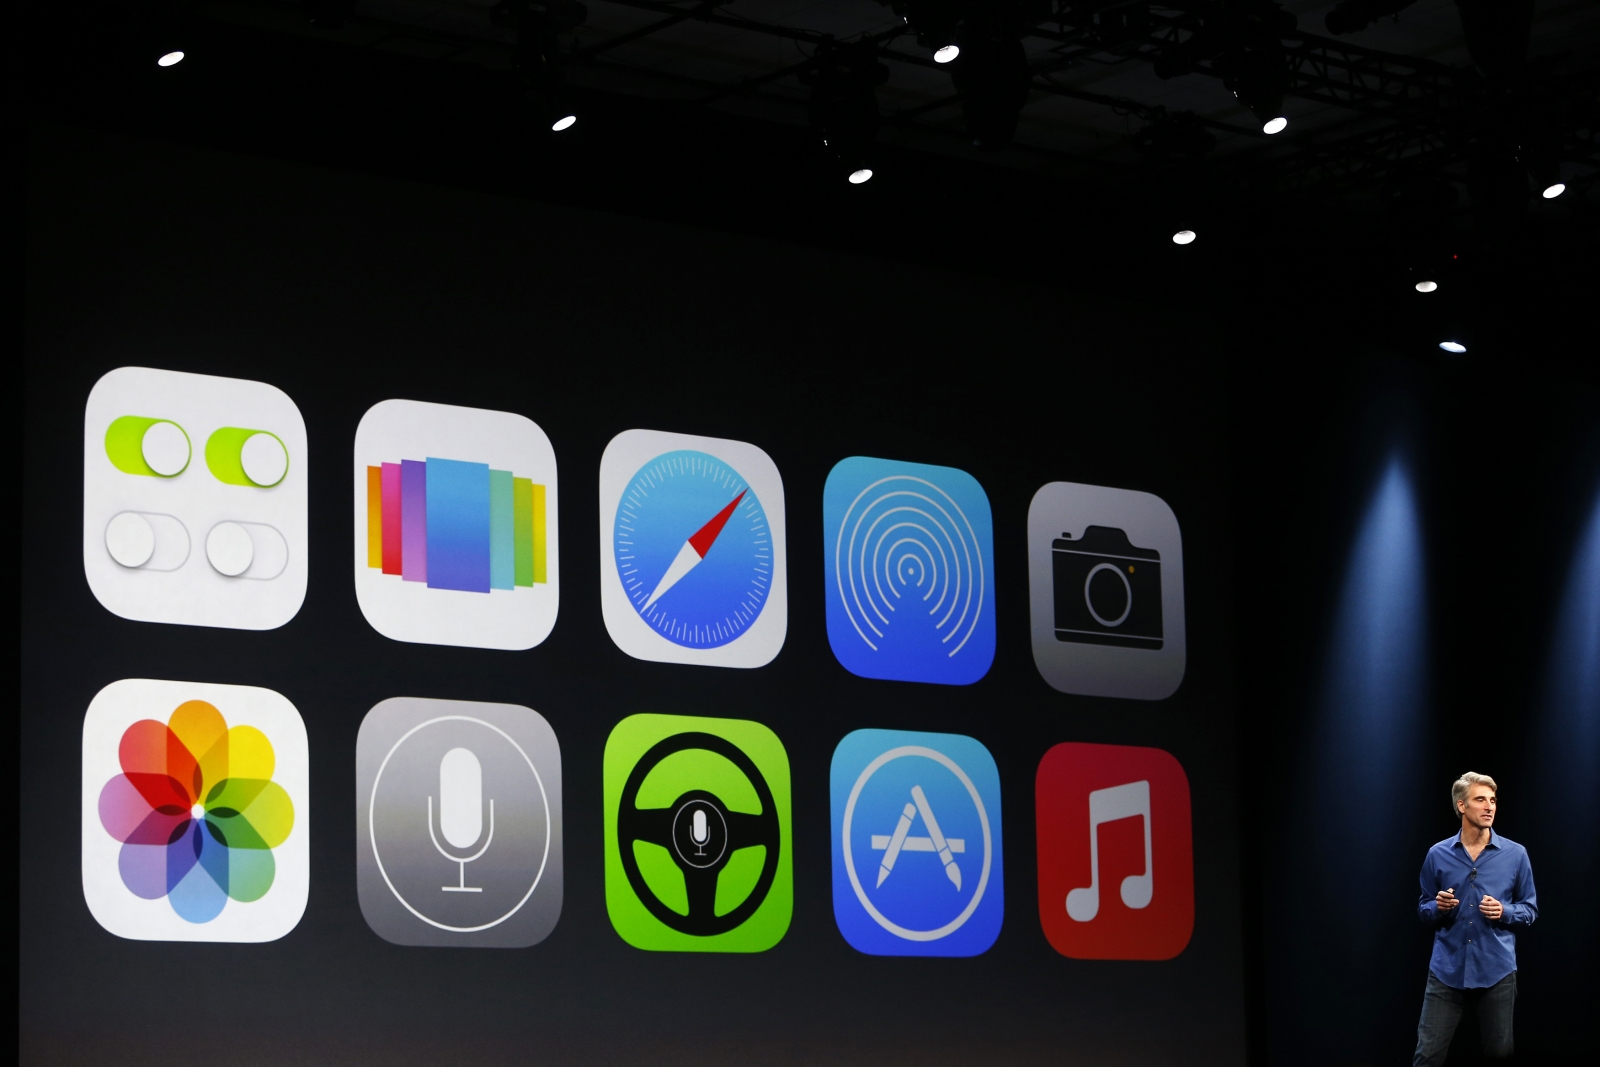 Apple pushes out iOS 10 GM seed ahead of public release